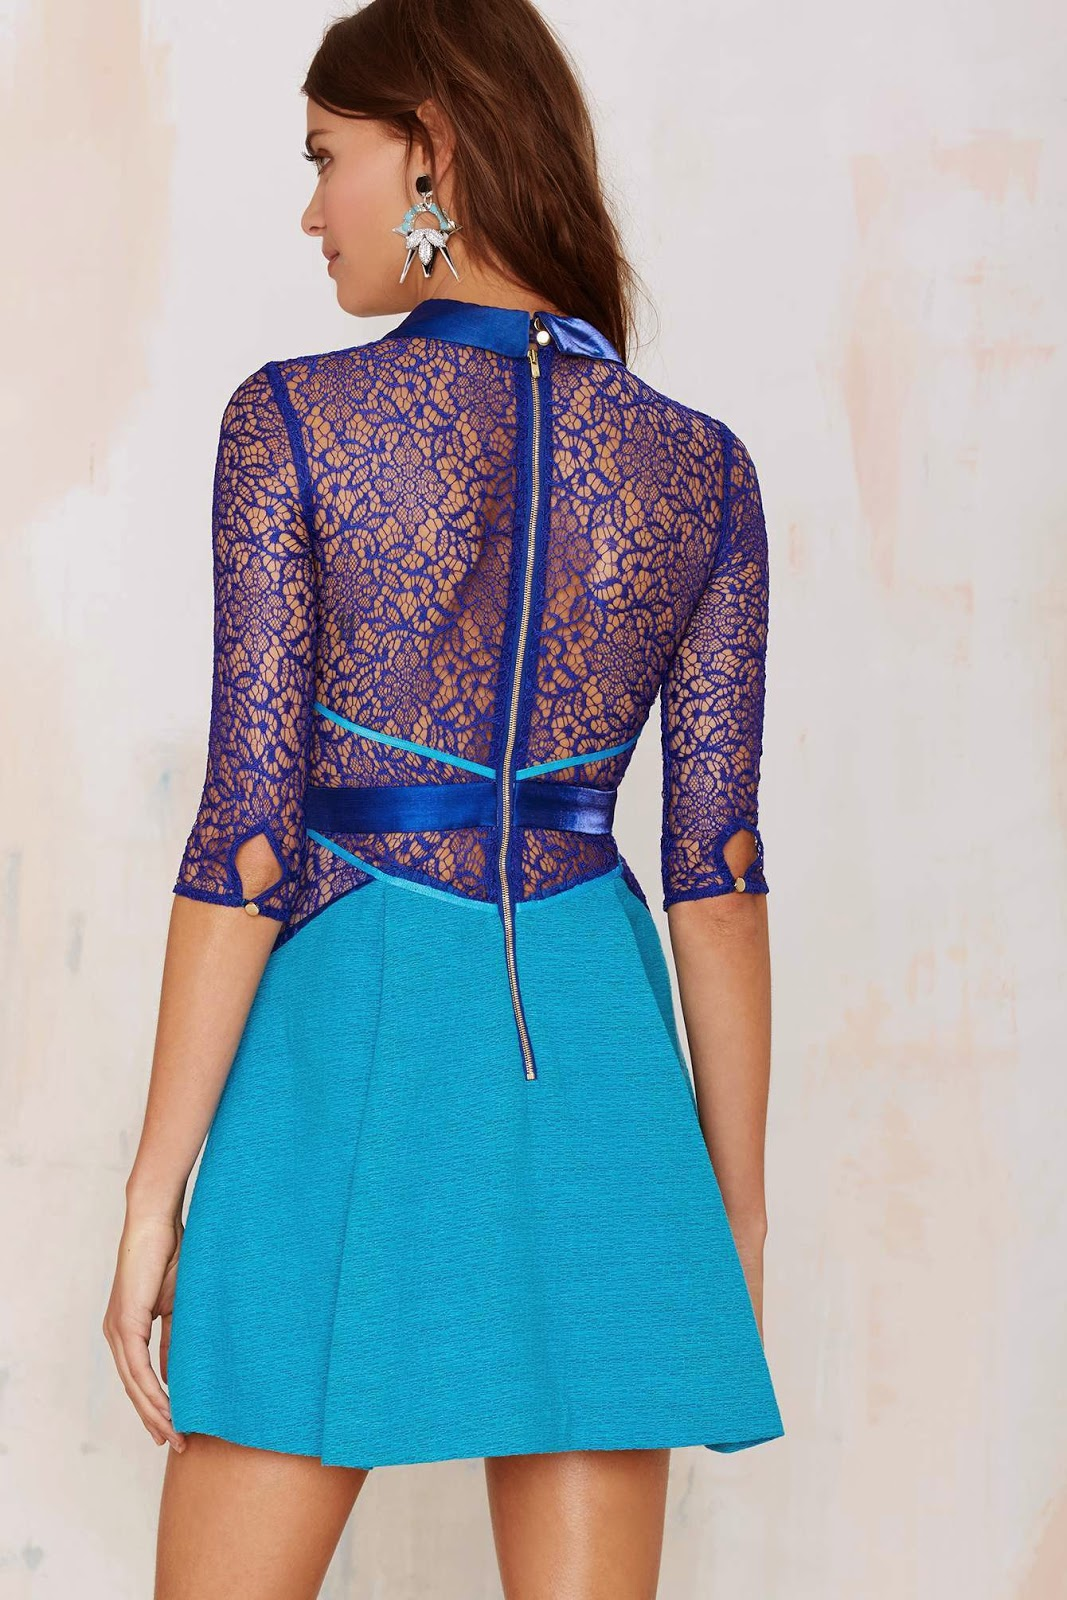 Style Know Hows Three Floor Lace Vision Fit Amp Flare Dress